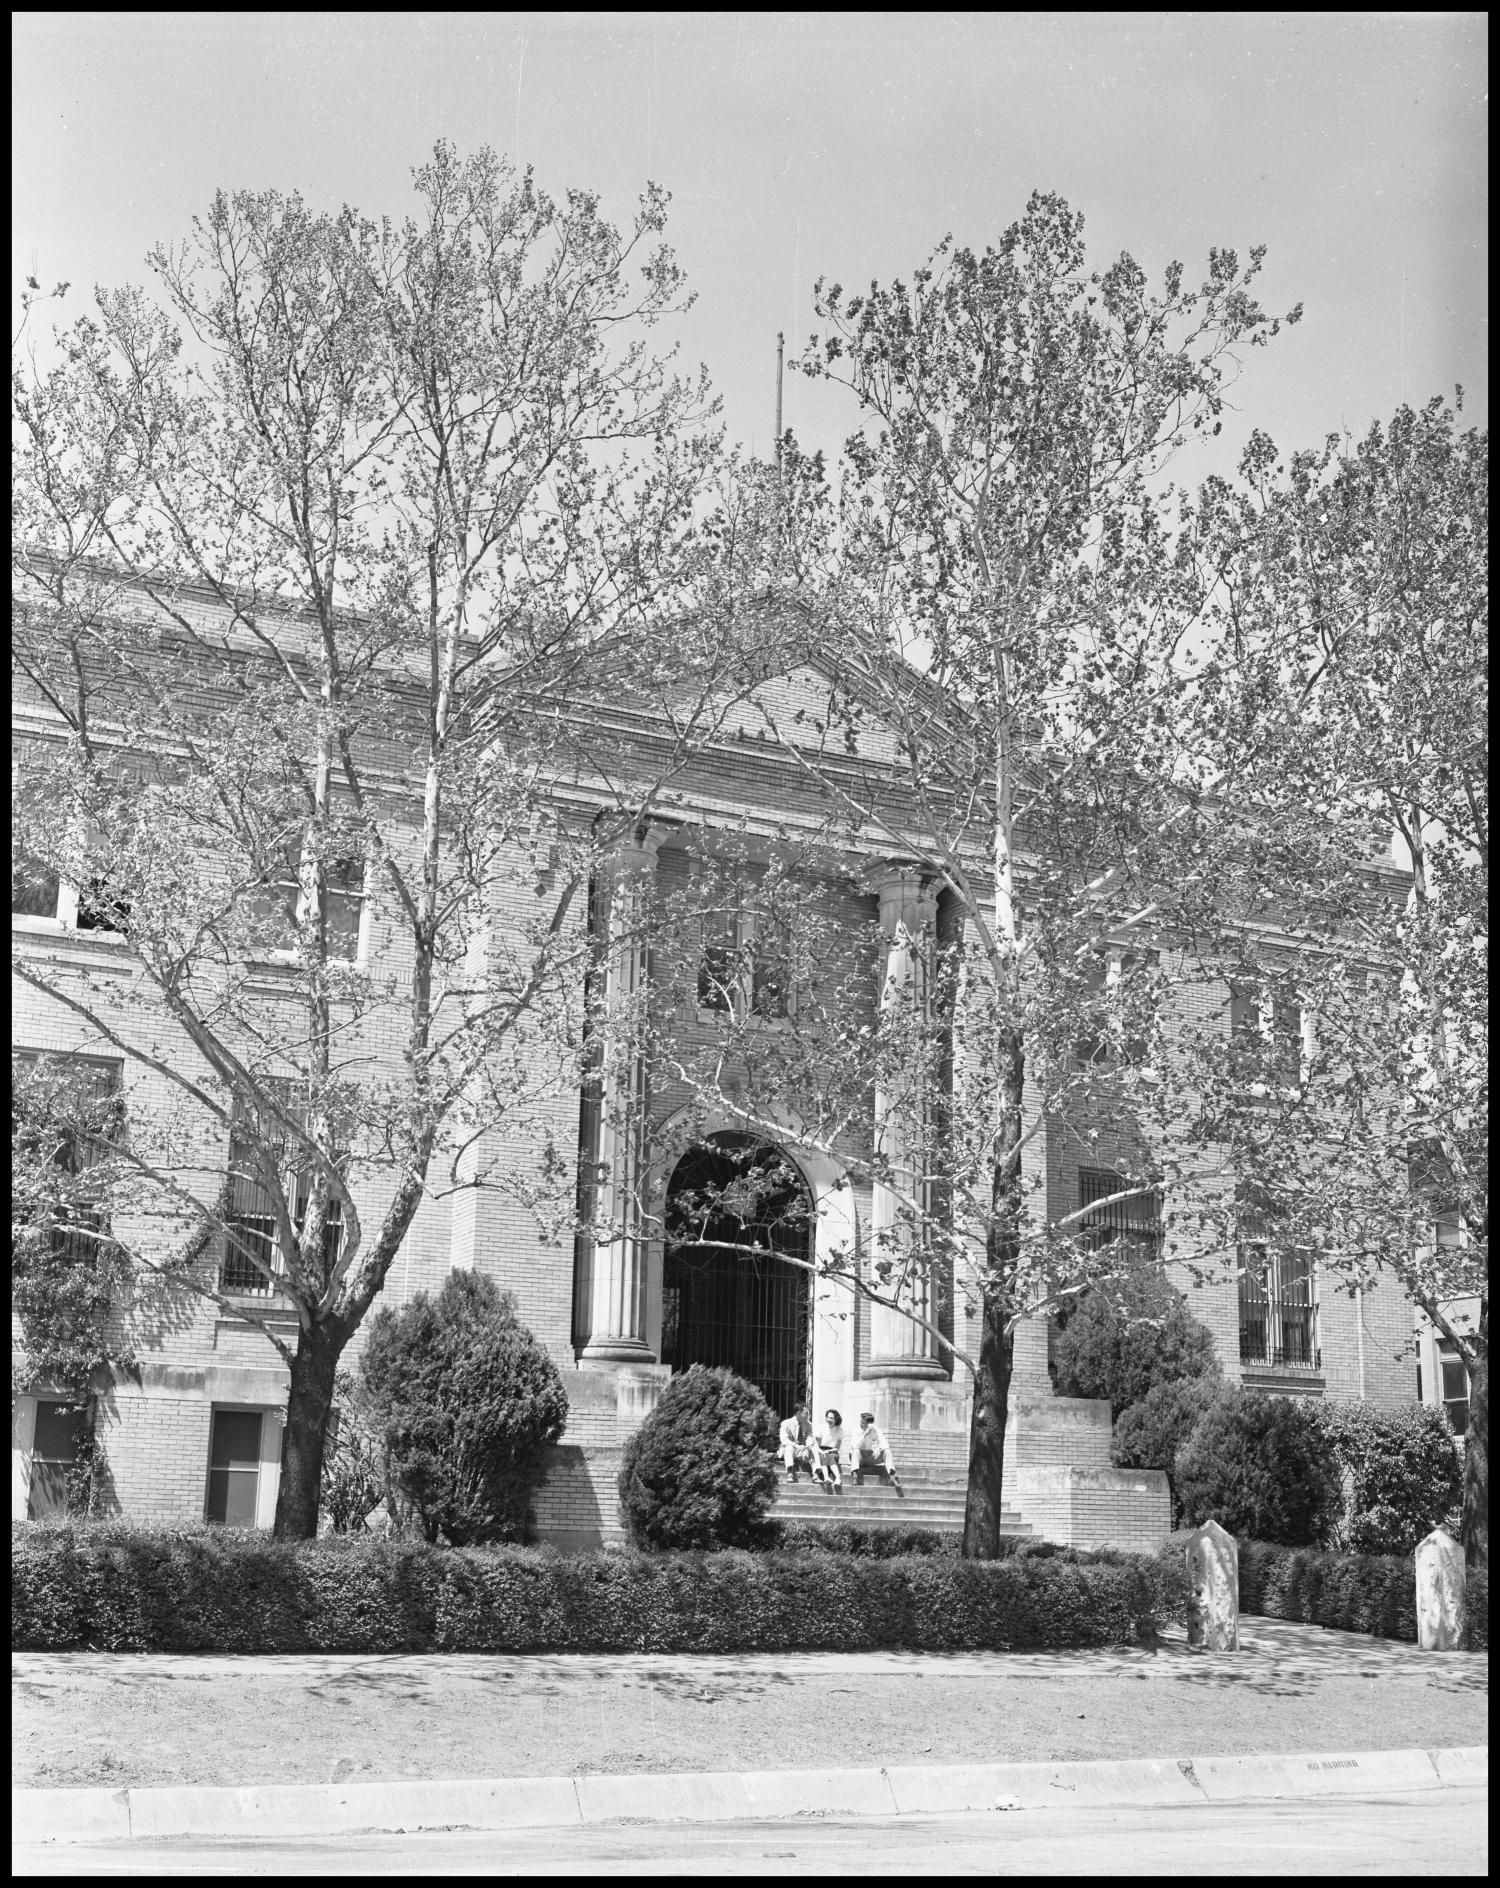 black and white photograph of building obscured by large leafless trees. The building has a rectangular facade with many windows, and the entrance at center has a large arched doorway with two large columns on either side, and a staircase in front.